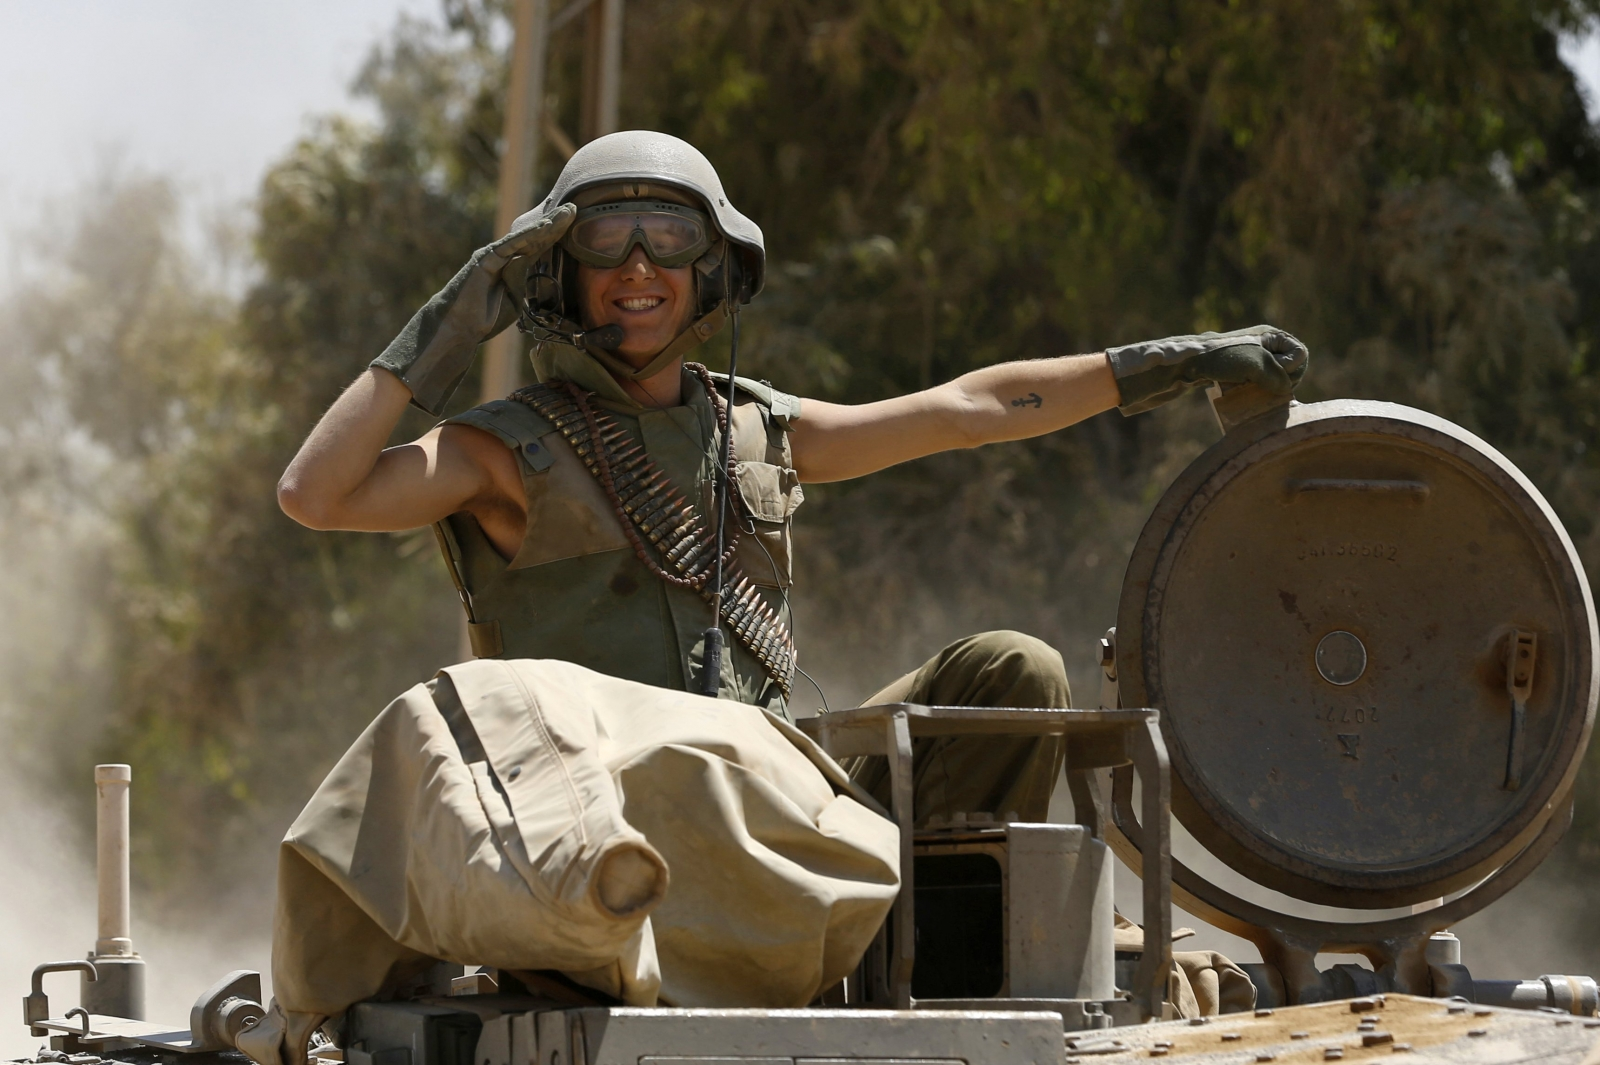 Israel Announces Total Pullout of IDF Troops